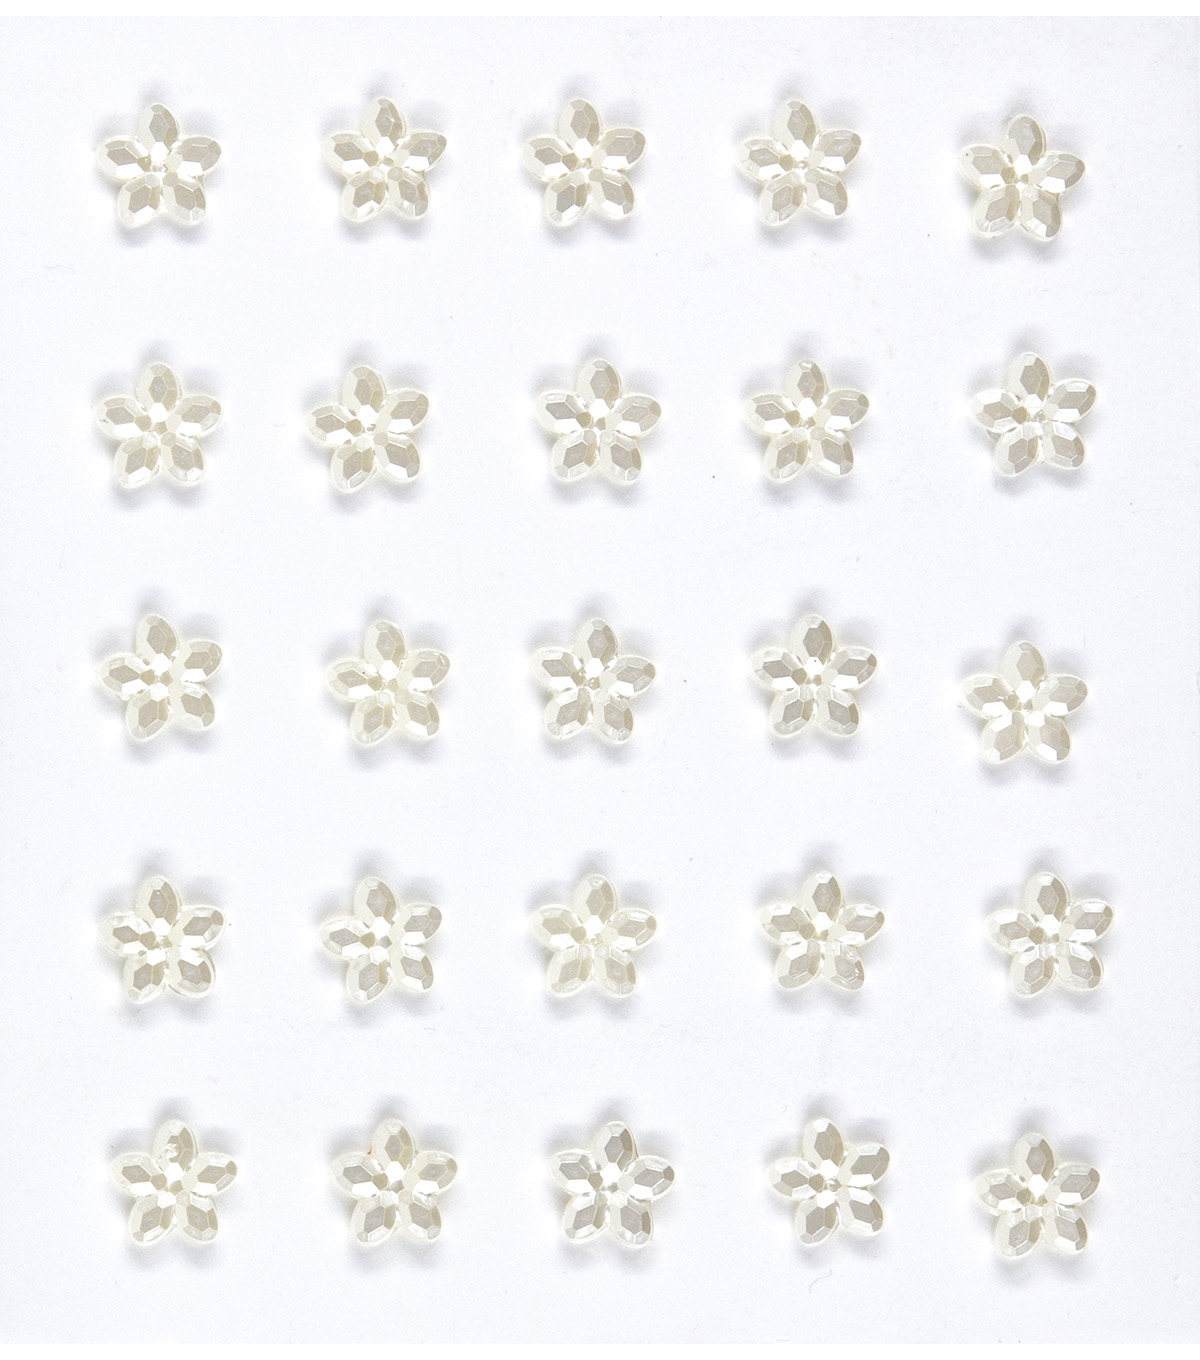 Jolee???s Boutique 25 Pack Mini Flower Gems Pearl Embellishments